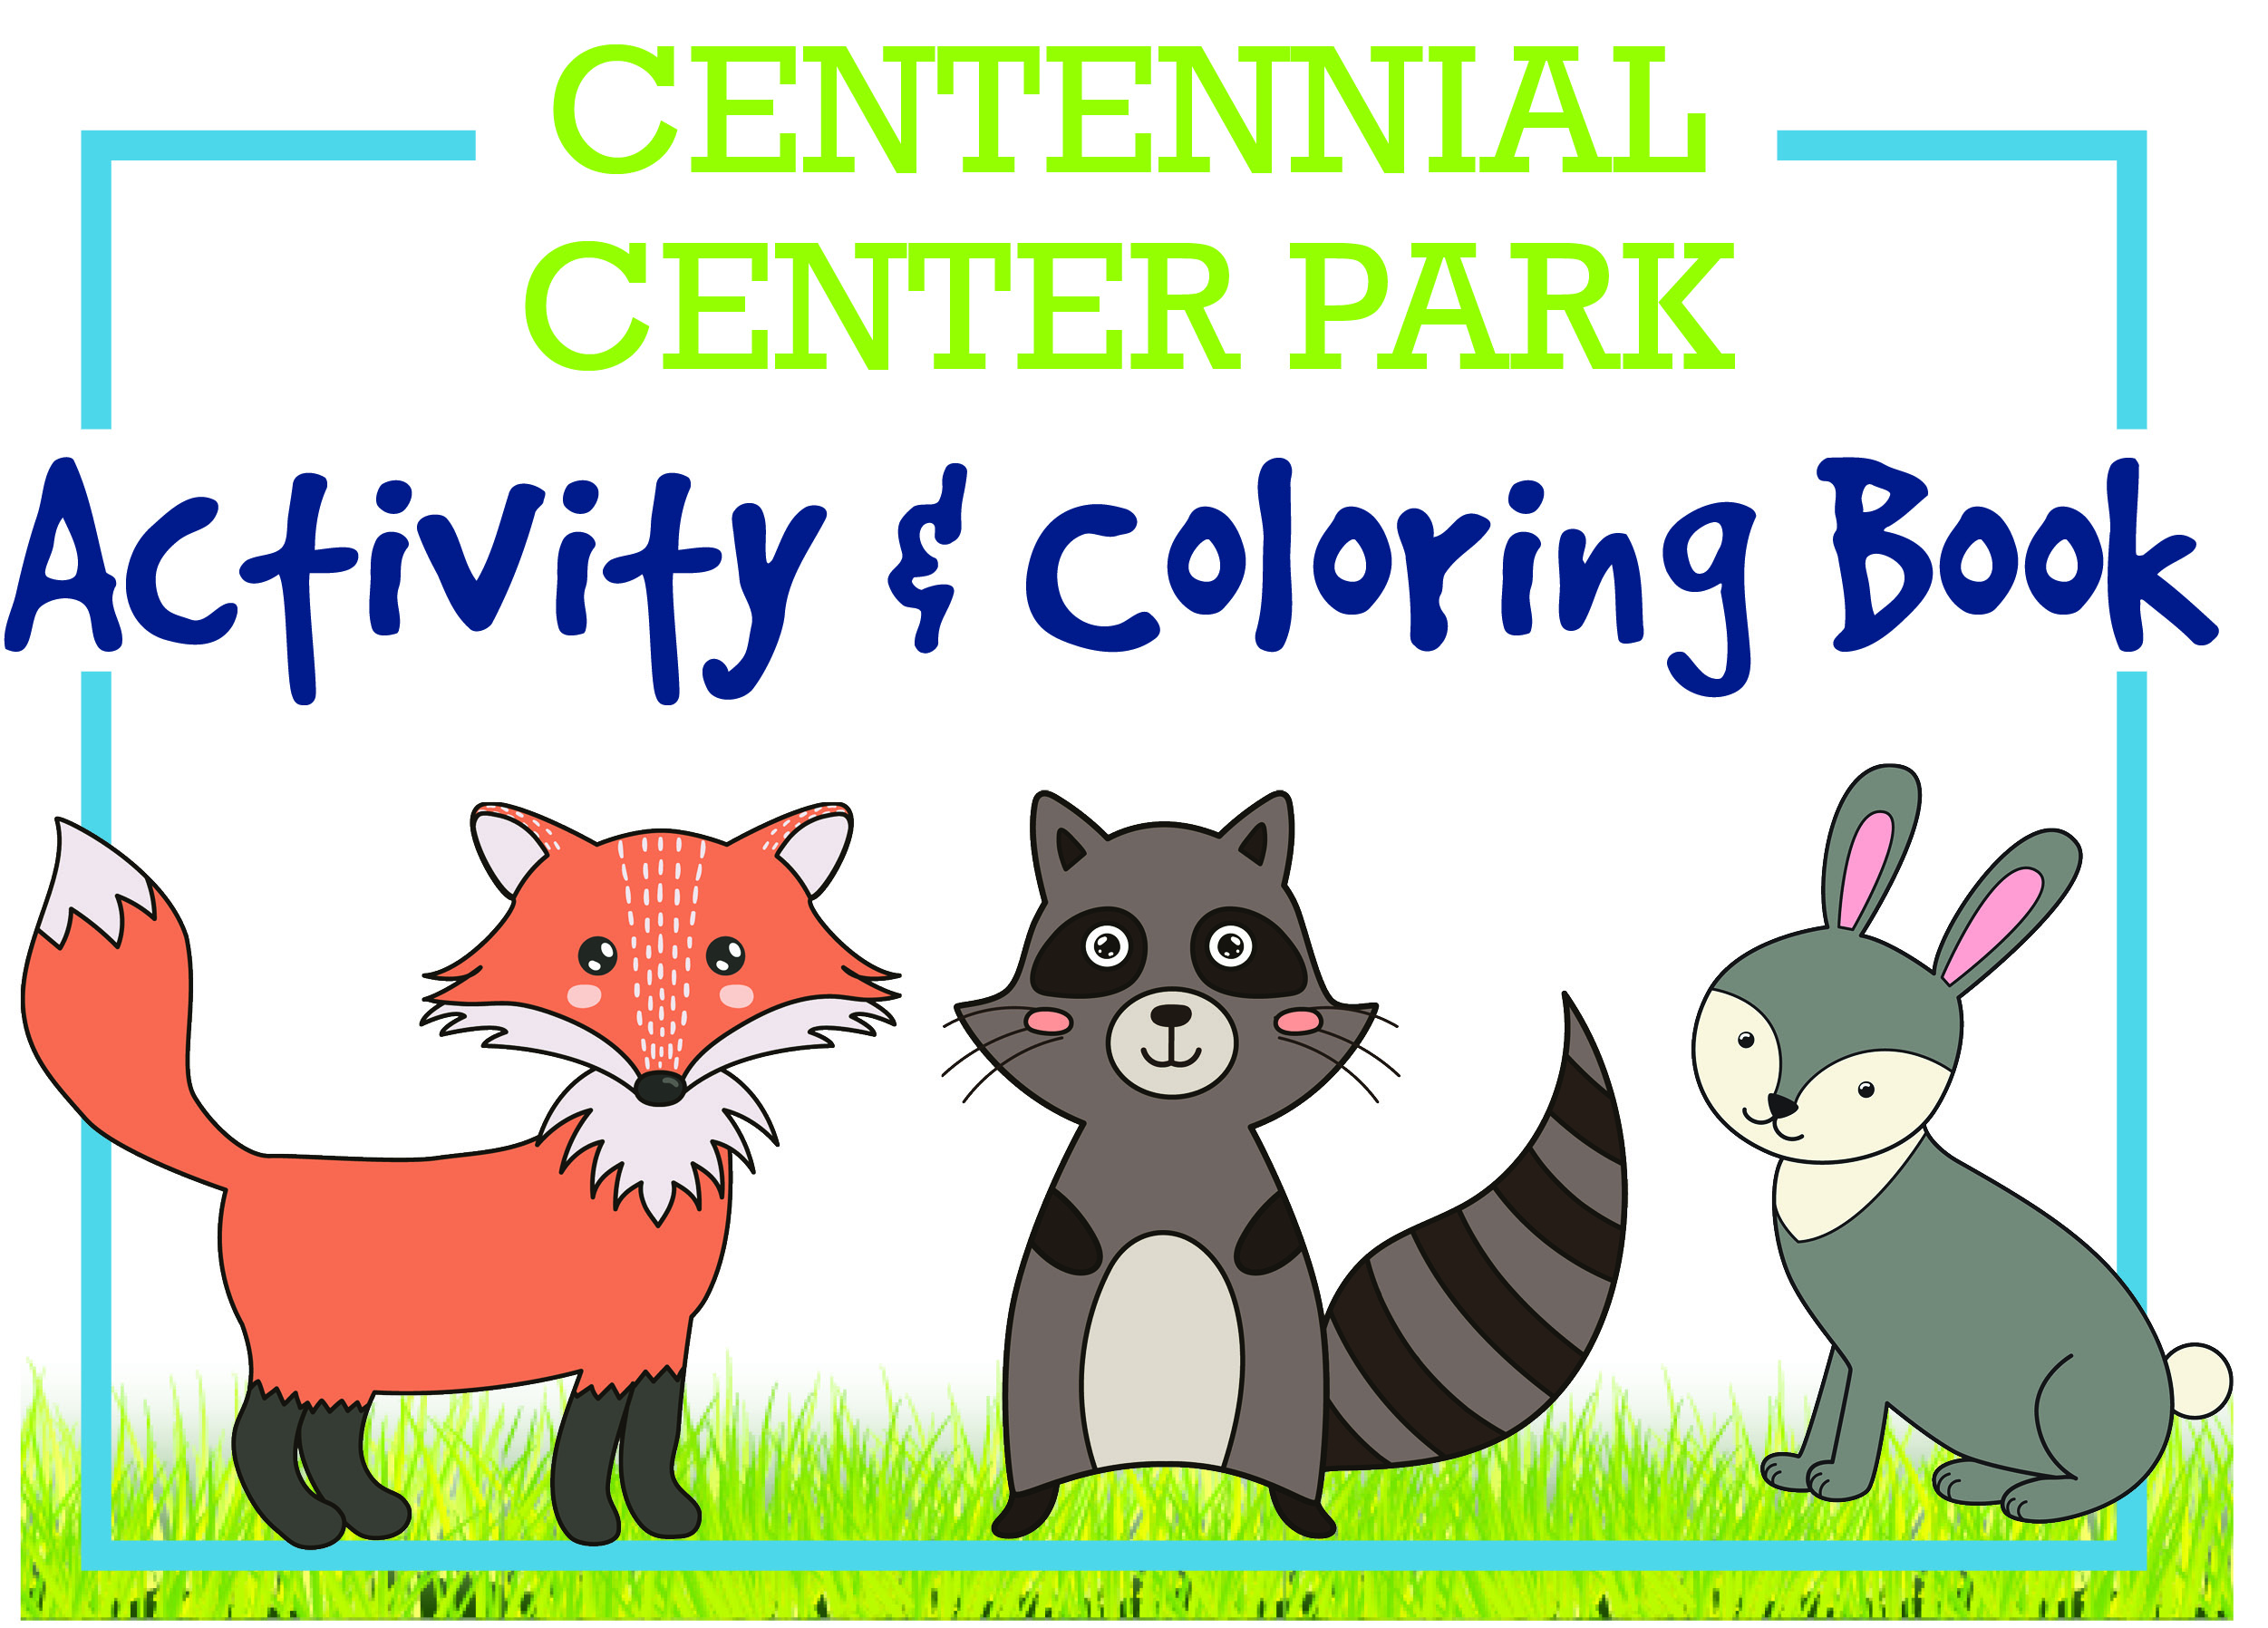 This is an image of the cover of the Centennial Park Activity Book